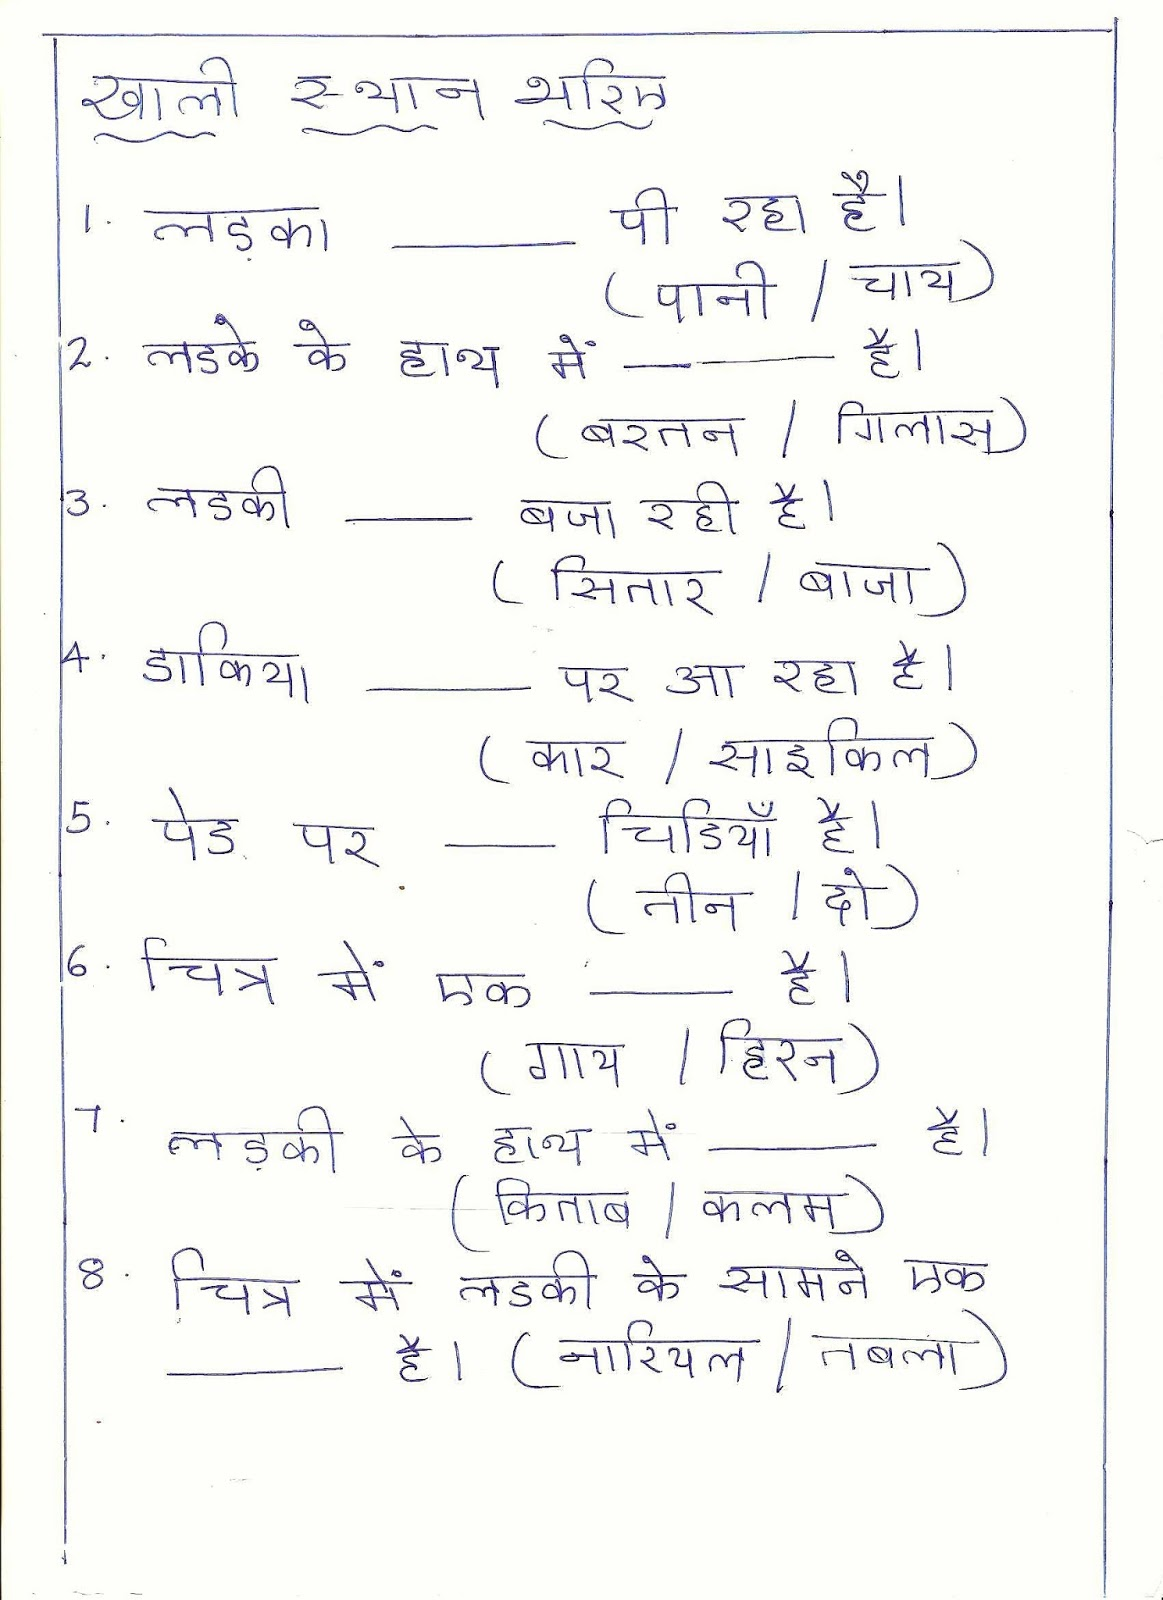 Hindi Worksheet For Class 1 Matra